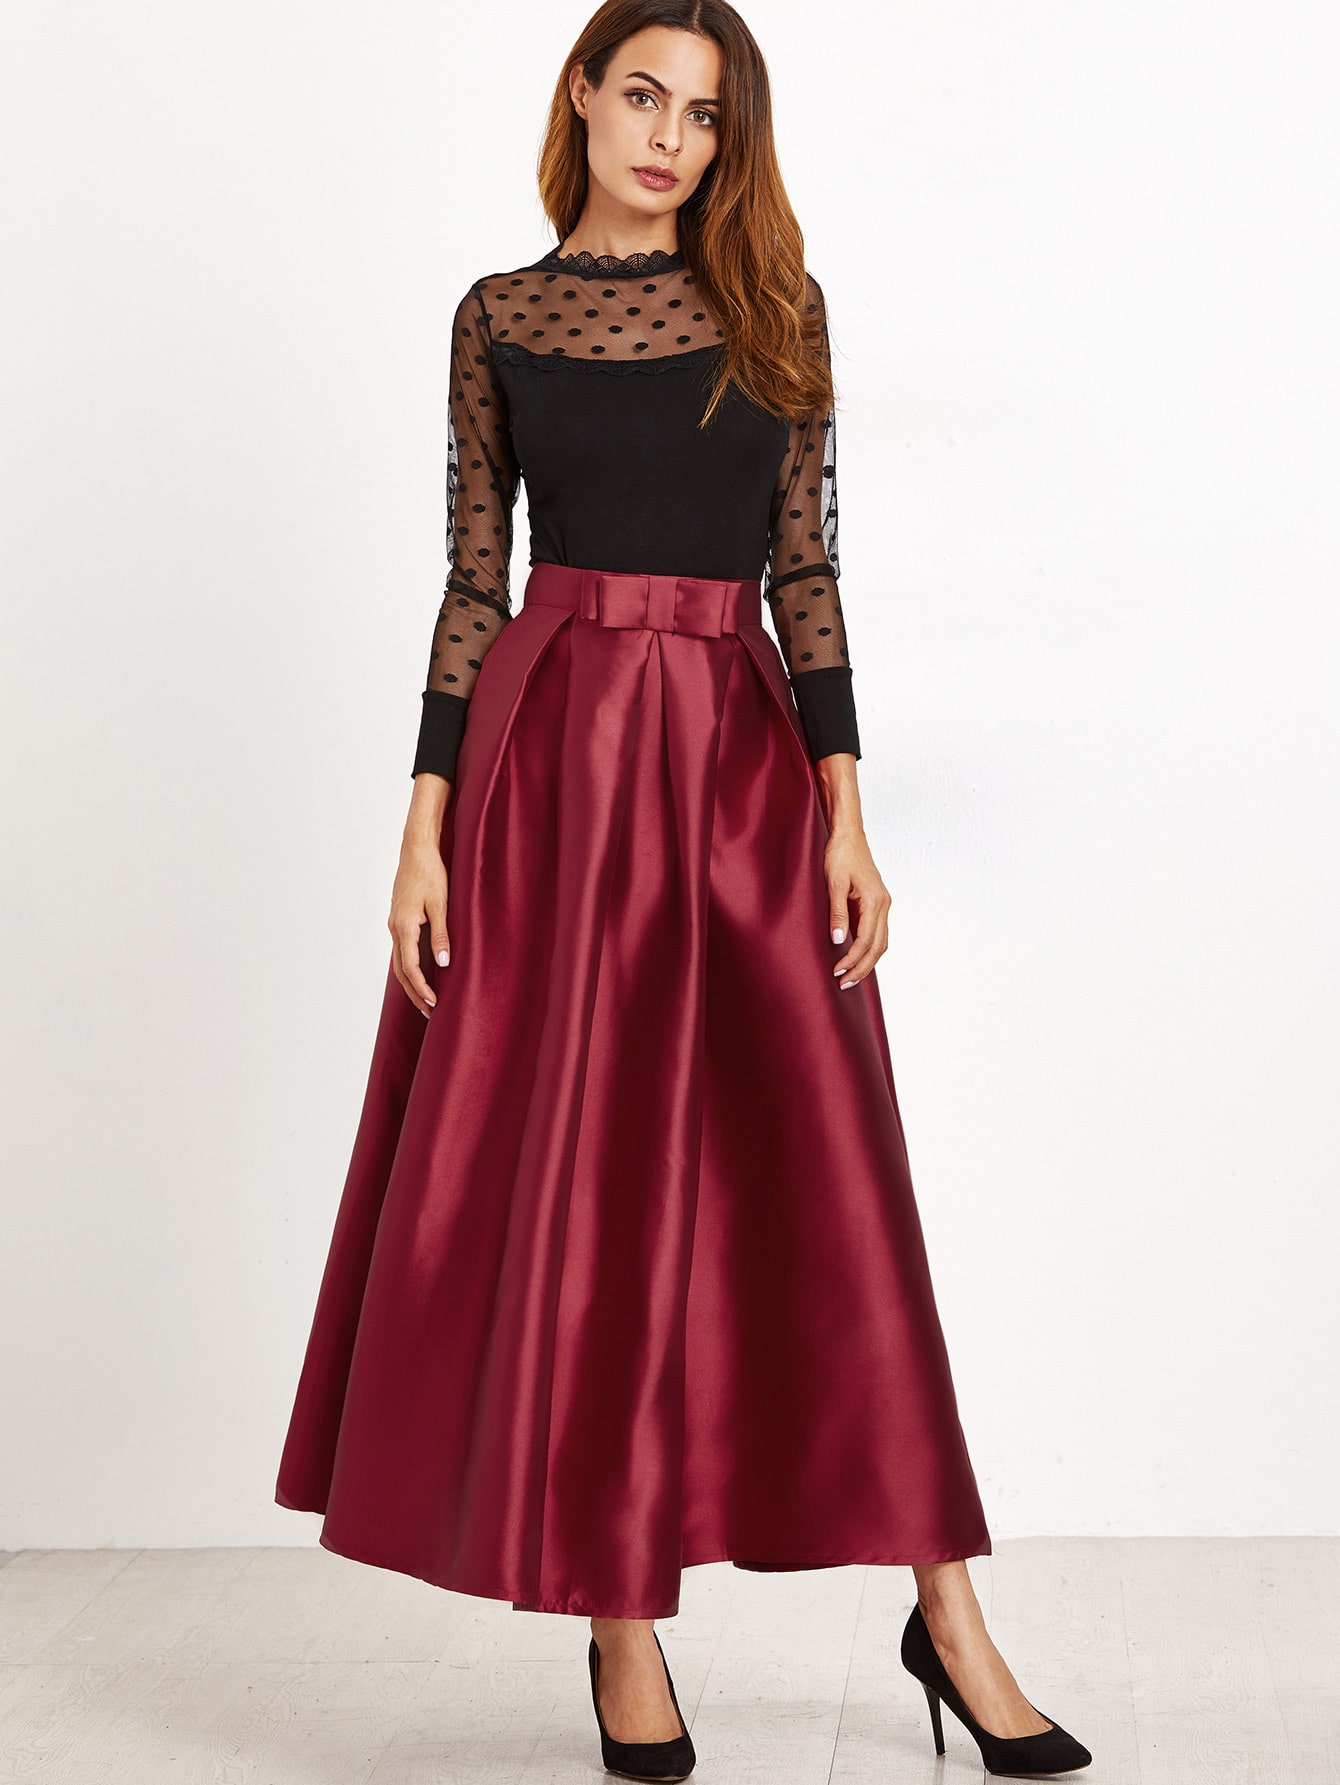 how to wear burgundy skirt